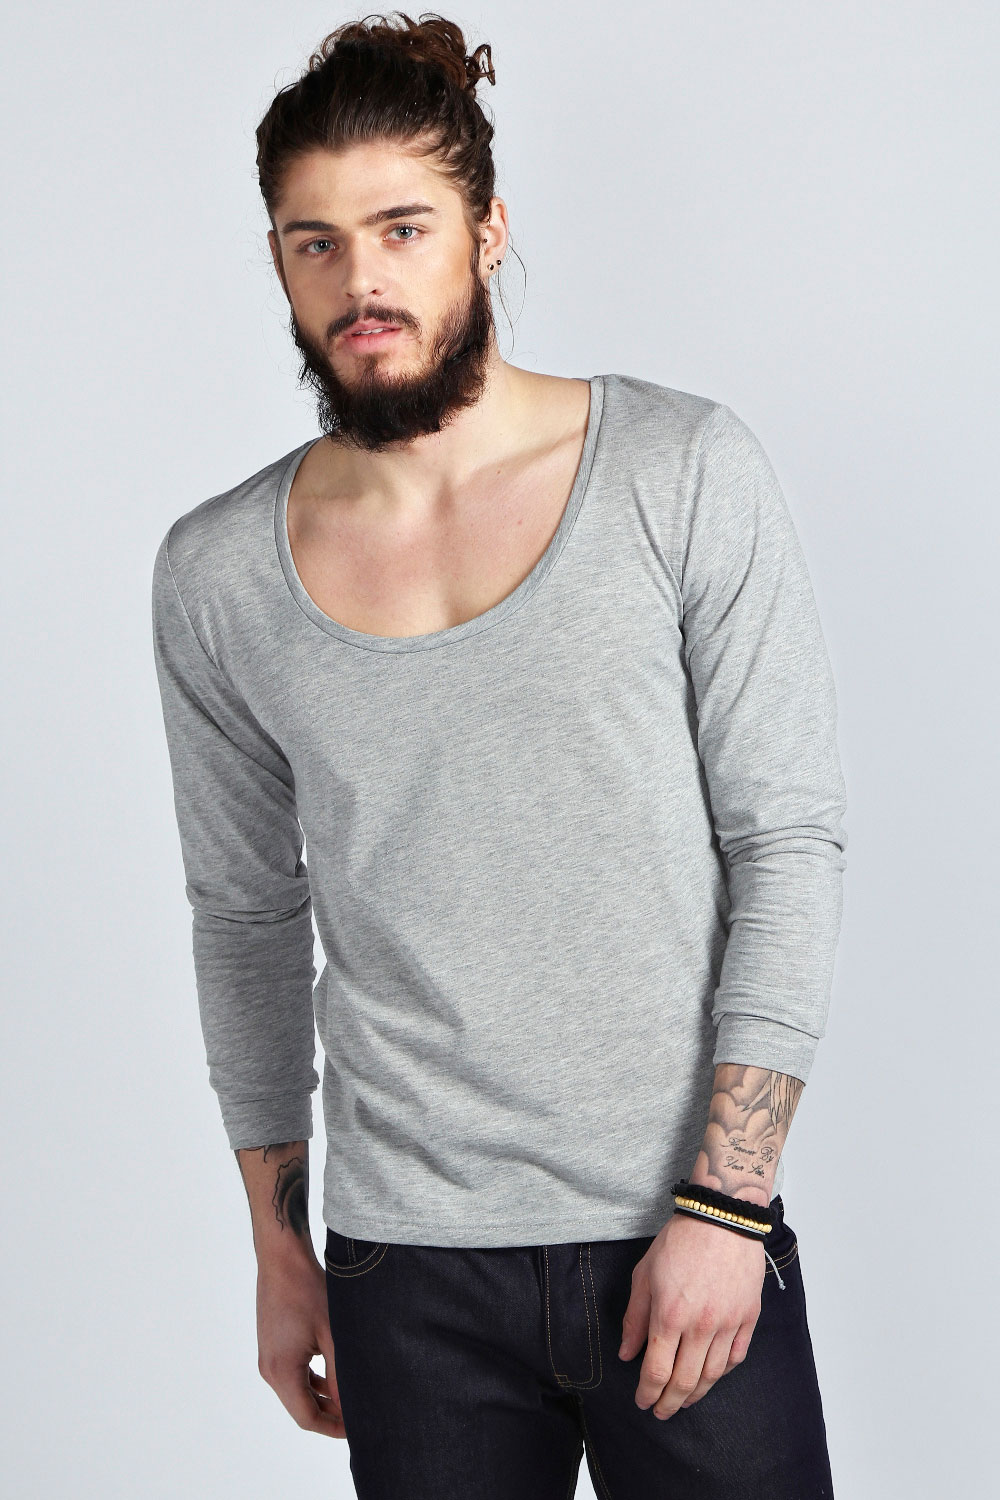 boohoo mens basic long sleeve scoop neck top t shirt ebay